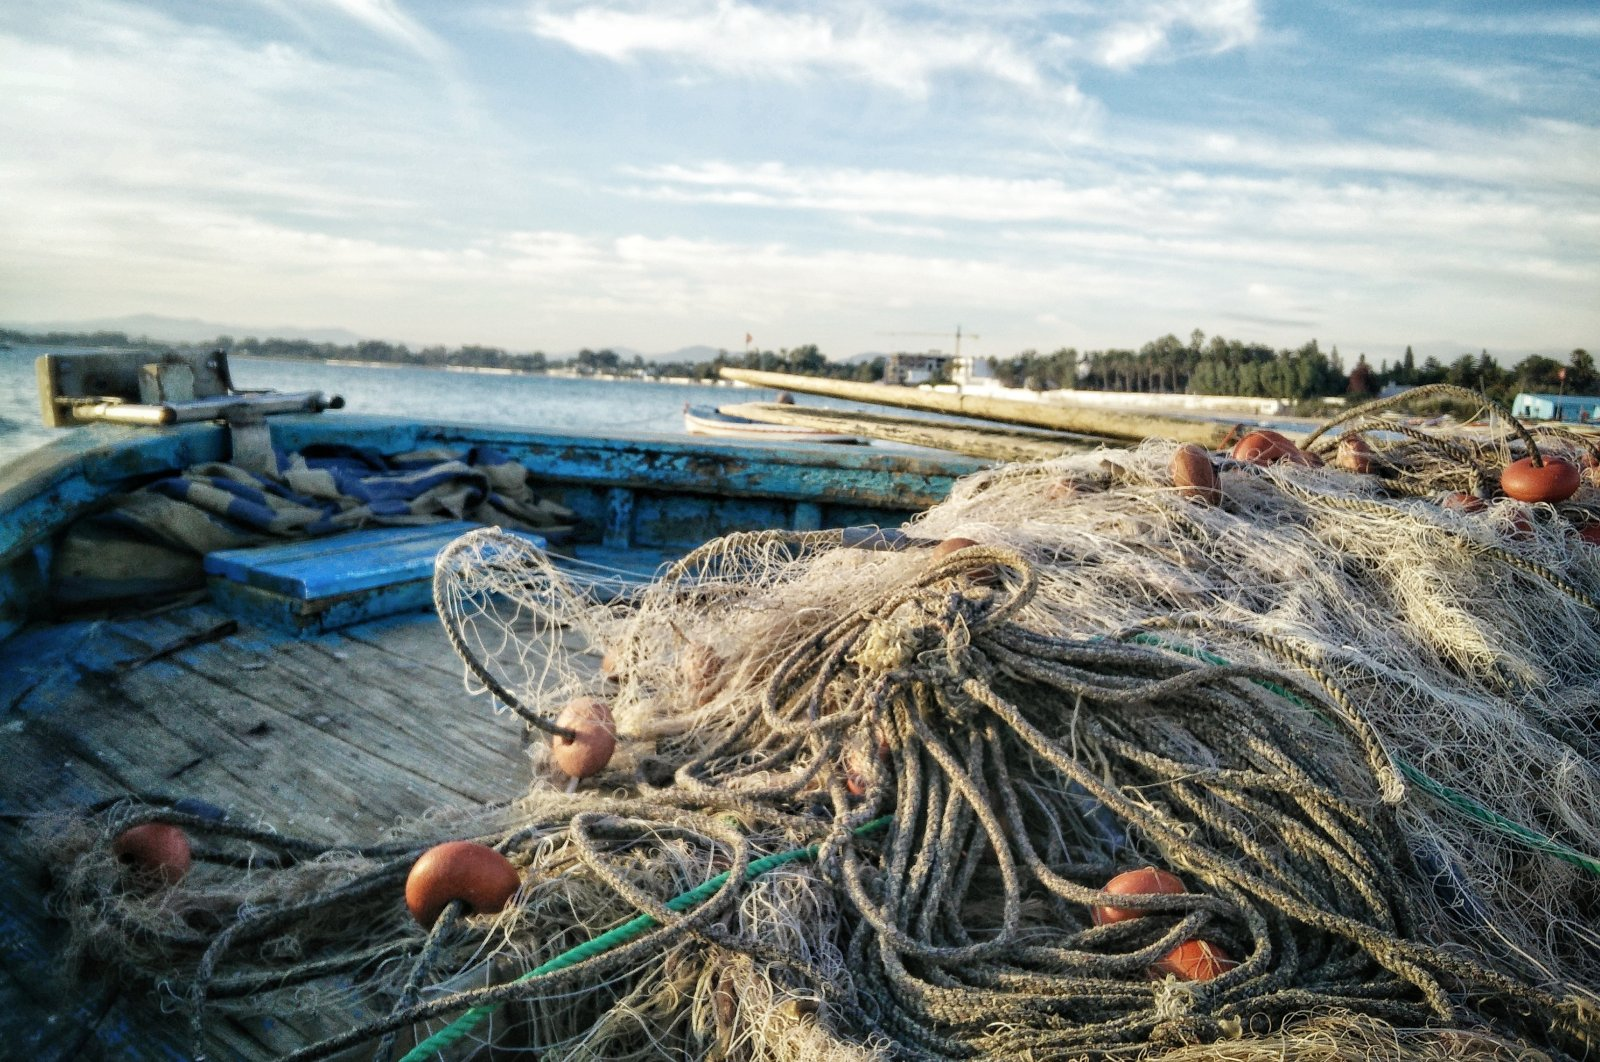 Abandoned nets are a threat to smaller fish and they also damage coral reefs. (COURTESY OF GÜNDOĞDU VILLAGE IMPROVEMENT AND BEAUTIFICATION ASSOCIATION)